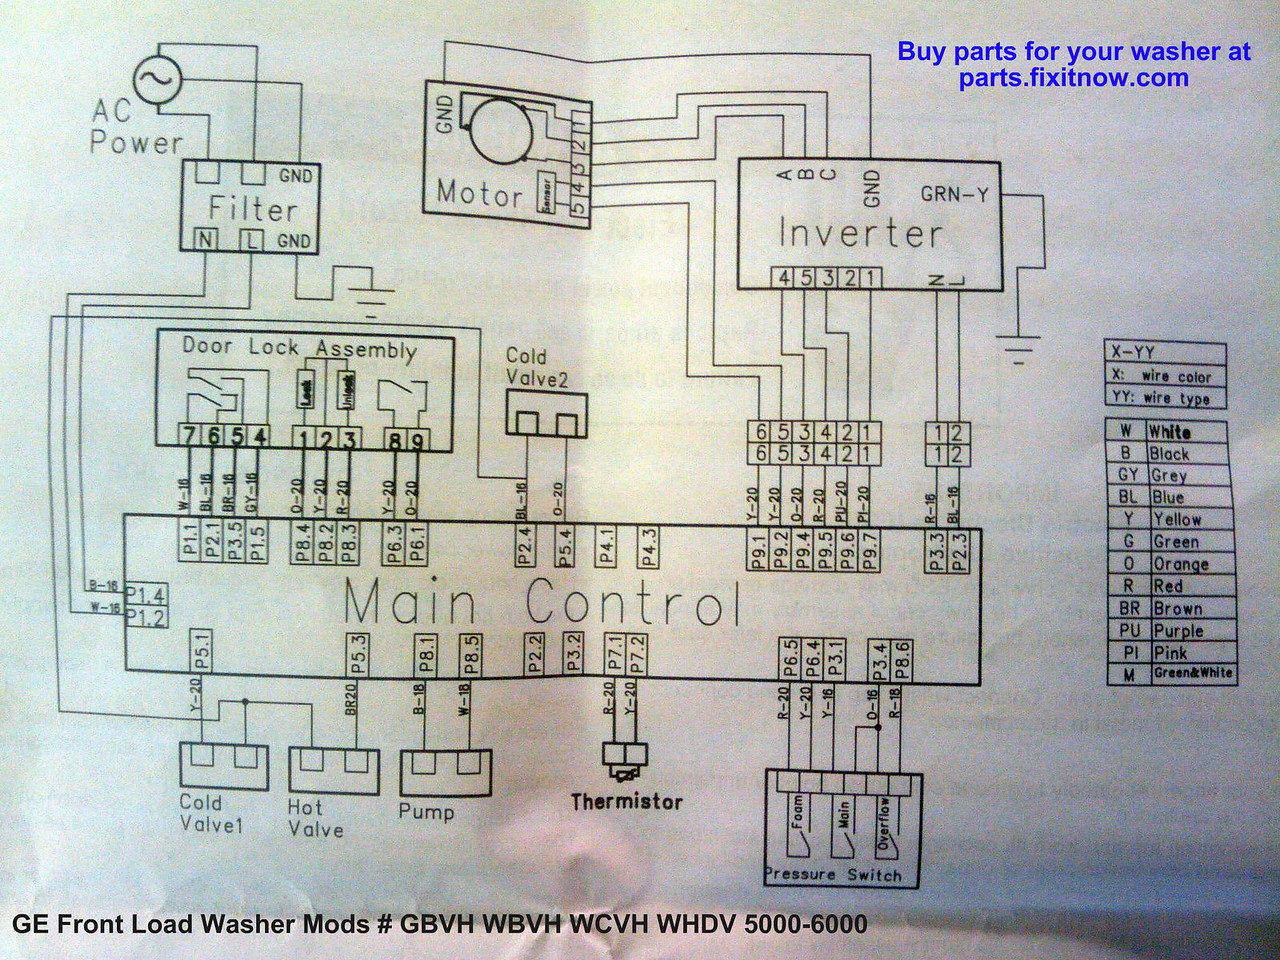 GE Front Load Washer Mods # GBVH WBVH WCVH WHDV 5000-6000